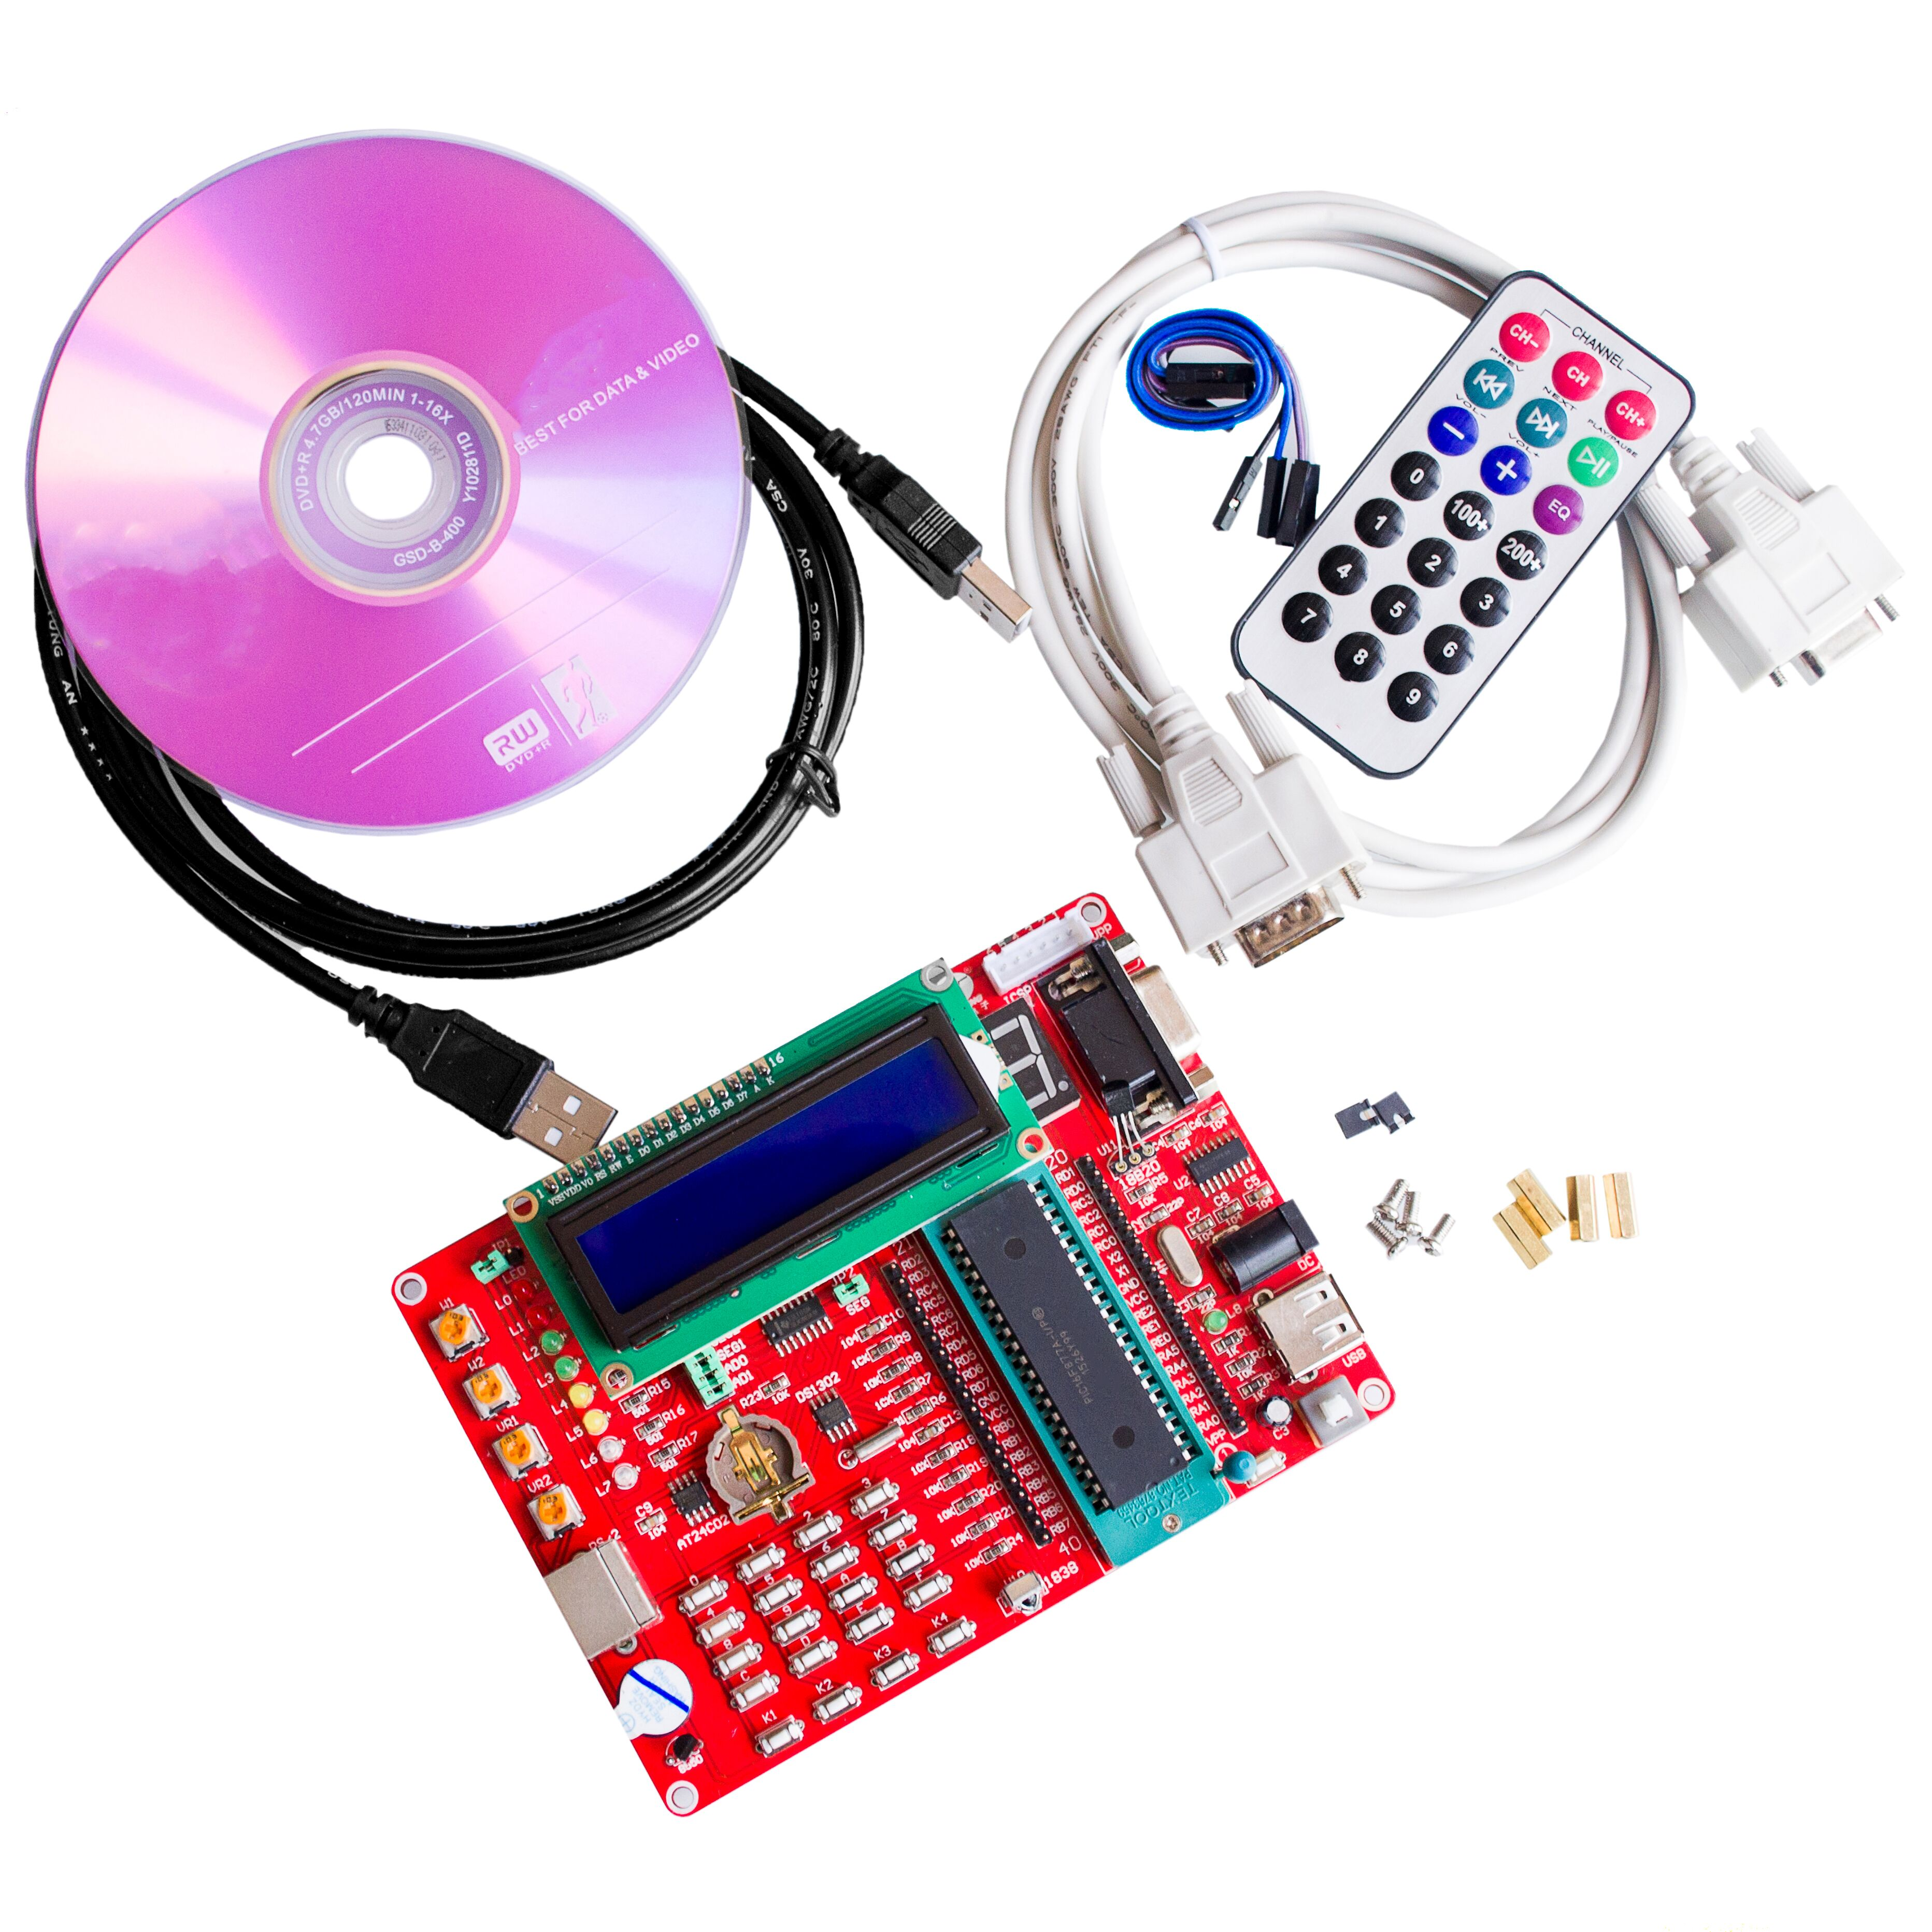 Buy Learning Board Pic Microcontroller Experiment Digital Voltmeter Using 16f877a And Seven Segments Development Video Tutorials From Reliable